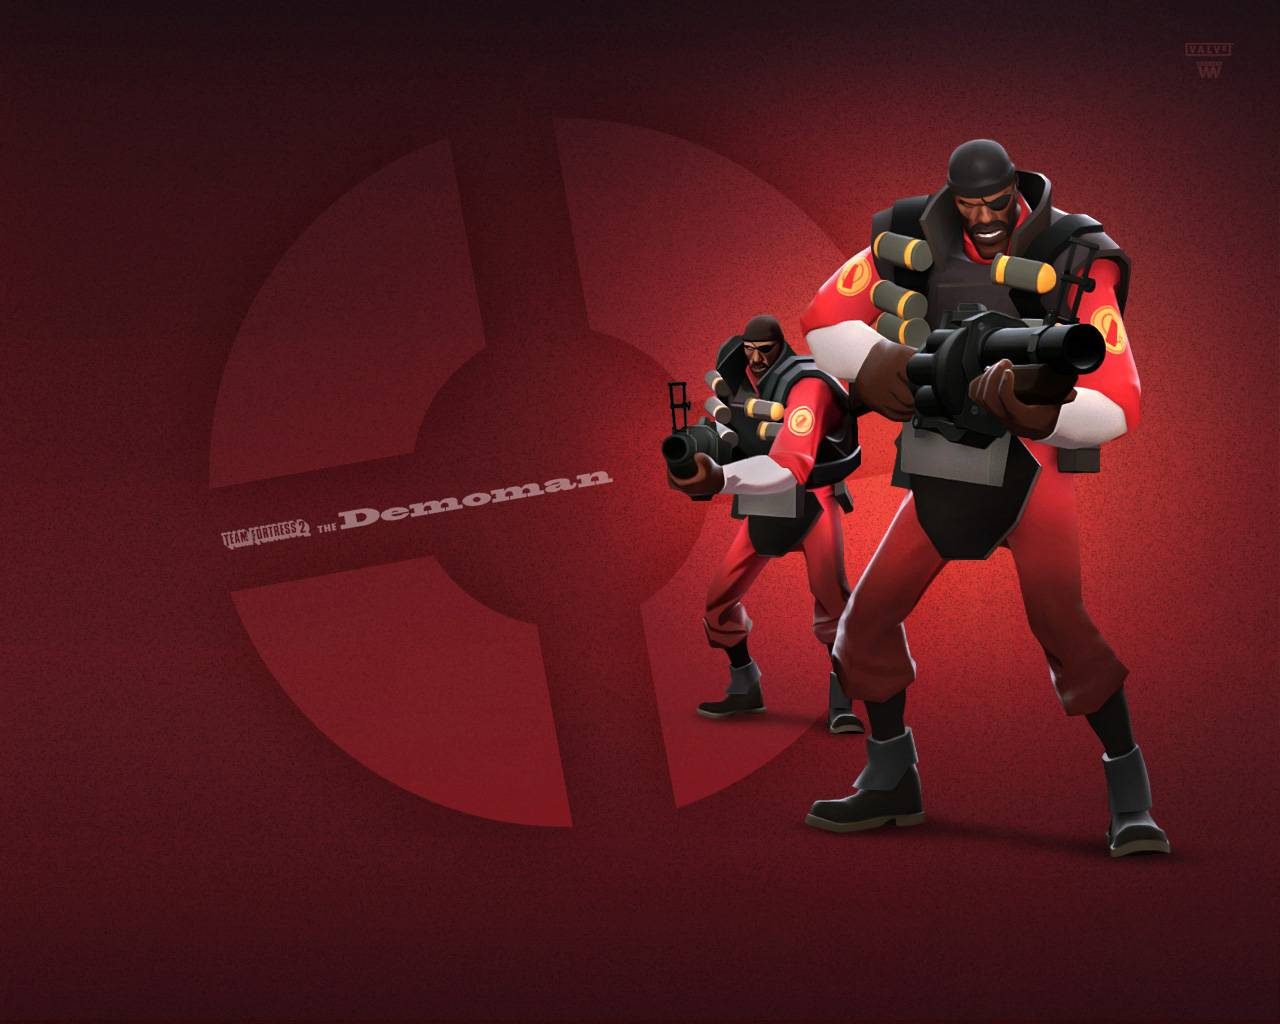 download Team Fortress 2 Red Demoman Team Fortress Wallpaper 1280x1024